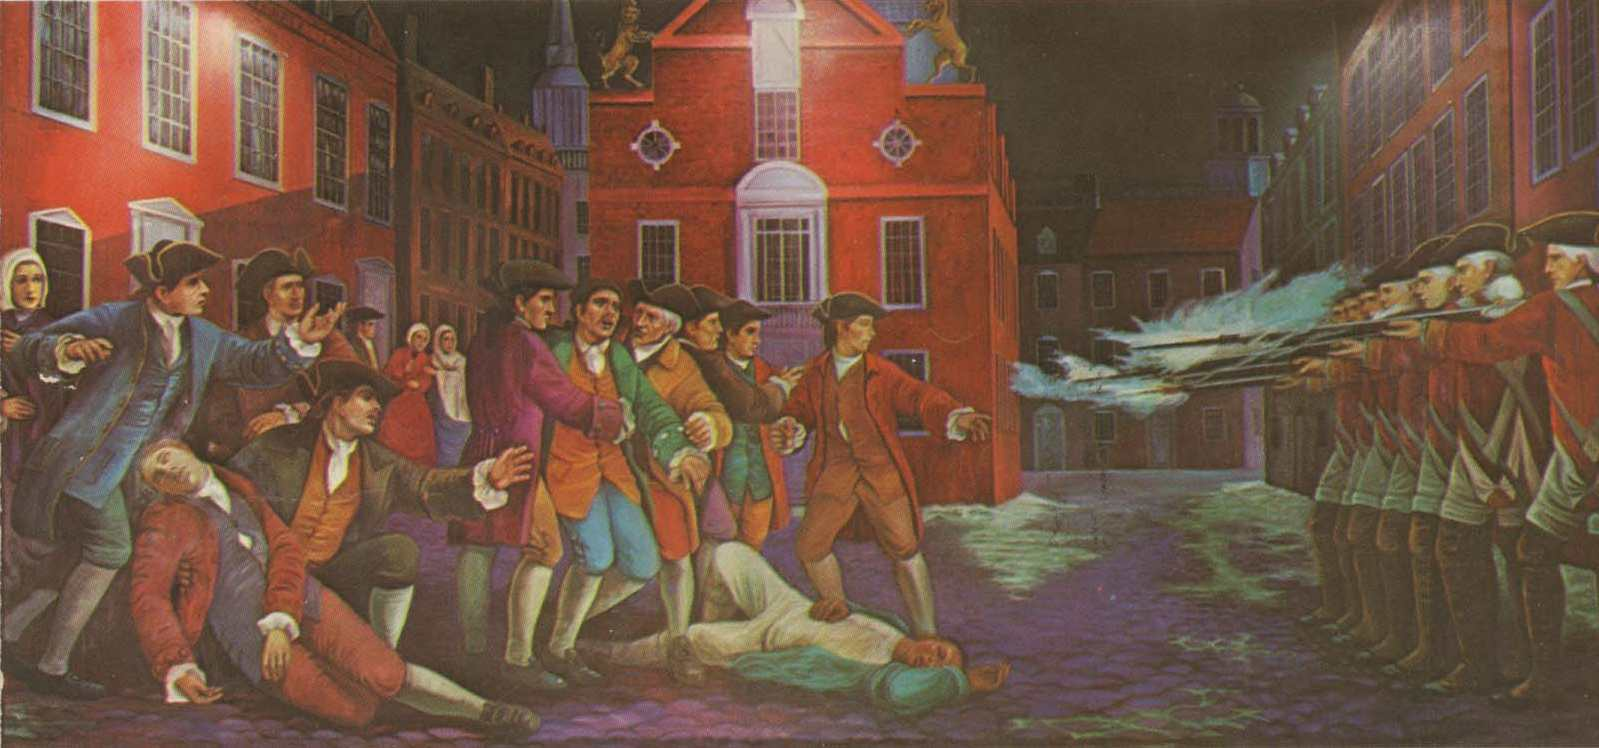 a brief history of the boston massacre in the united states This is a timeline of united states history, comprising important legal and territorial changes as well as political, social, and economic events in the united states and its predecessor states.